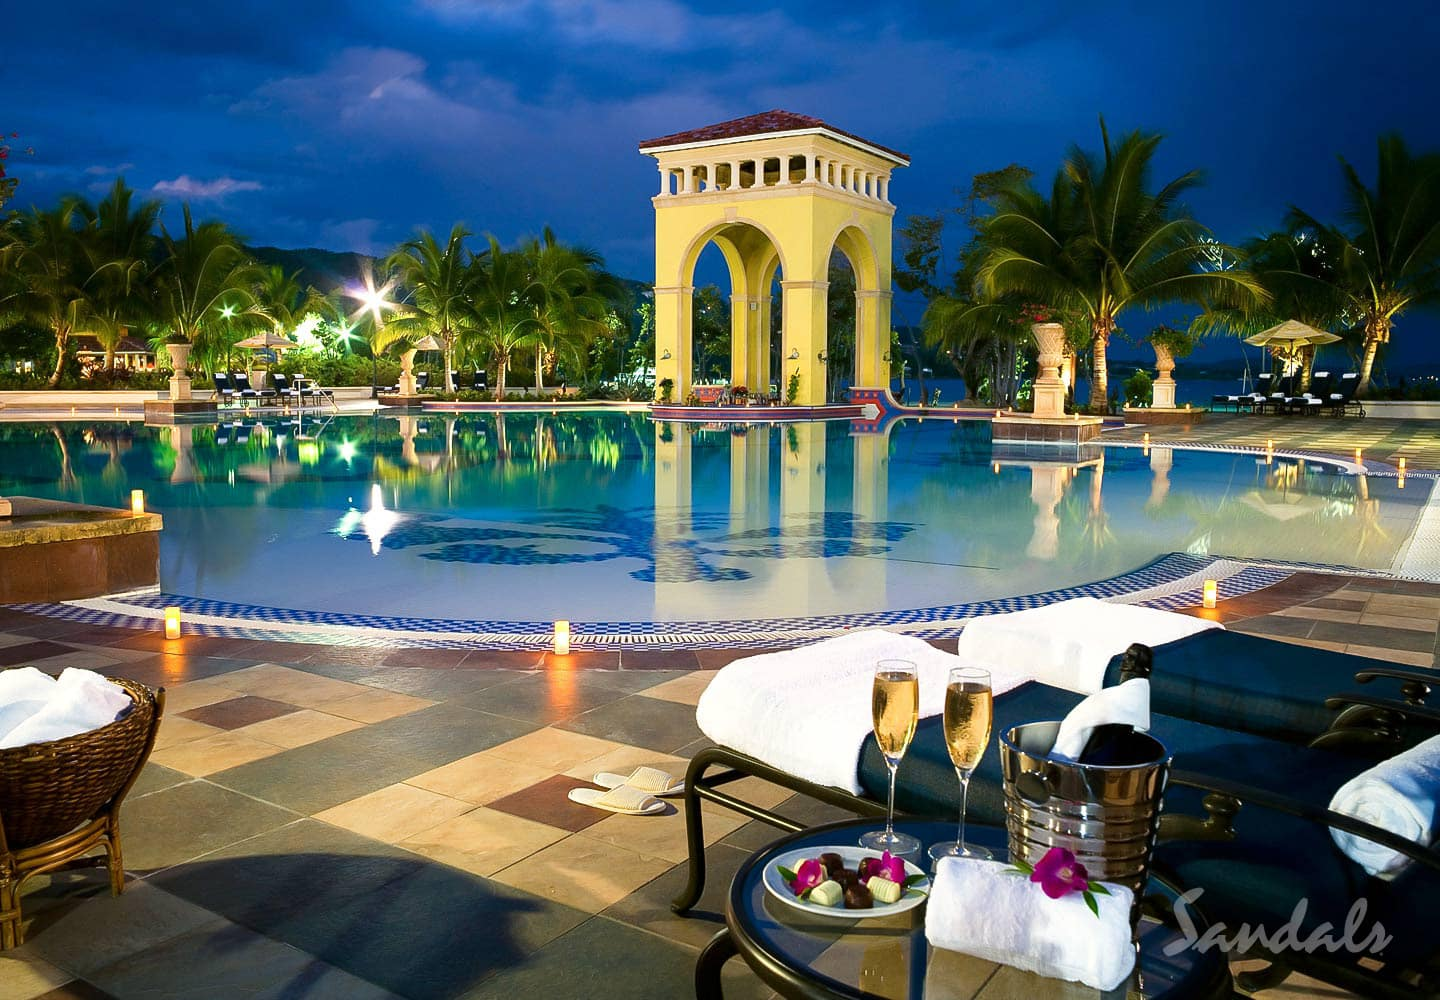 poolside, enjoying champagne at the Sandals Whitehouse Jamaica luxury resort, all inclusive vacations adults only booked through Southern Travel Agency Augusta, GA